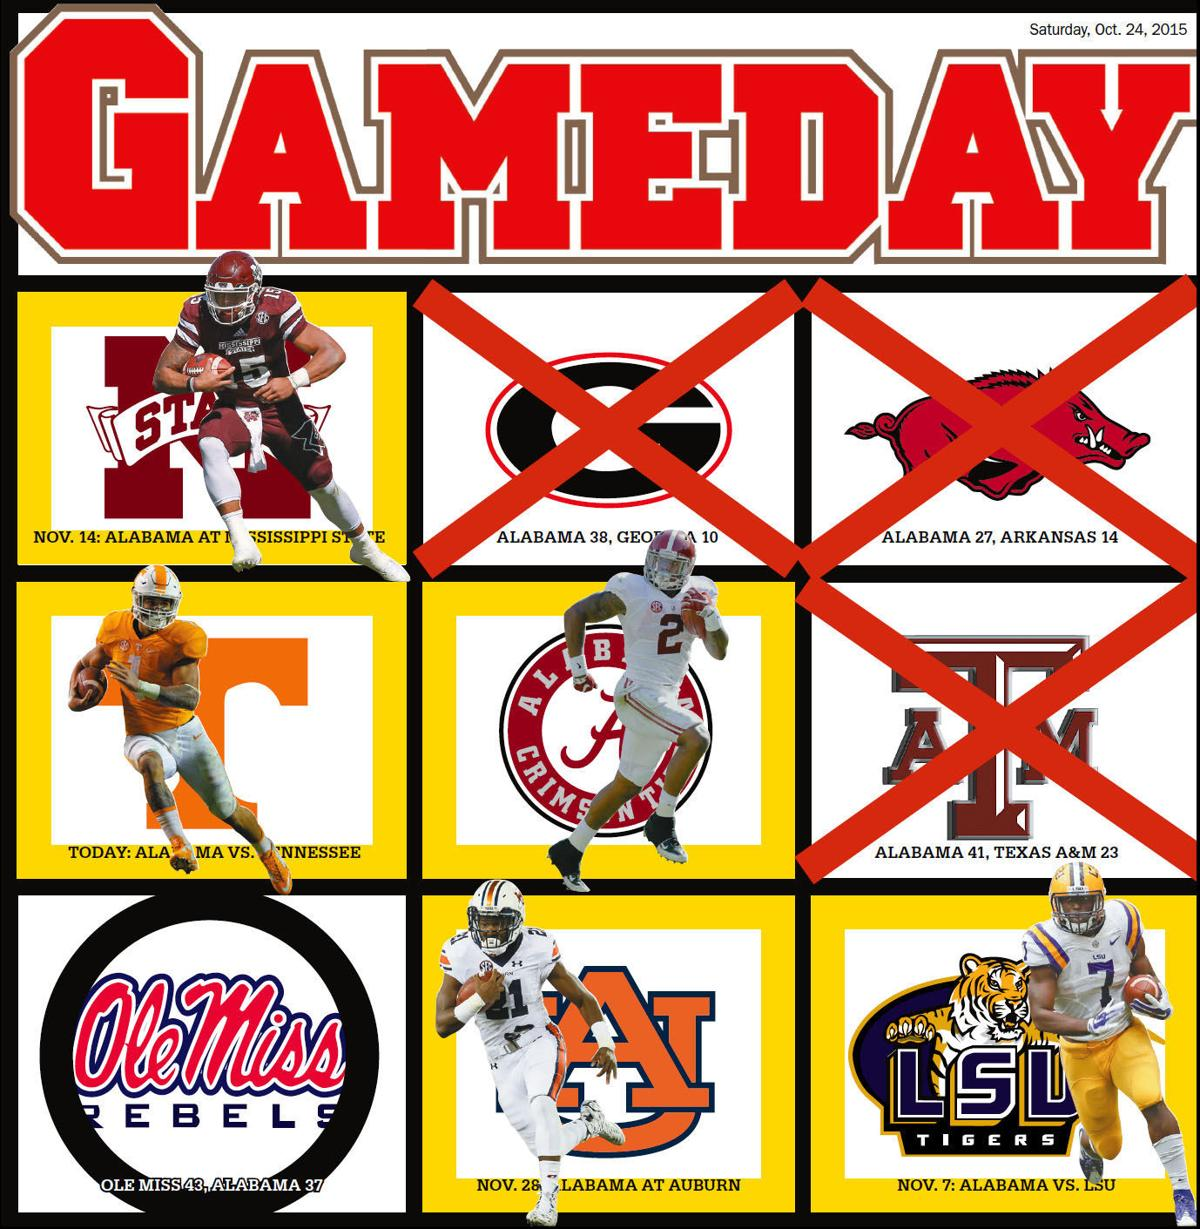 Ole miss gameday colors 2015 - Gameday Tide Will Be Left Out If Ole Miss Wins Out